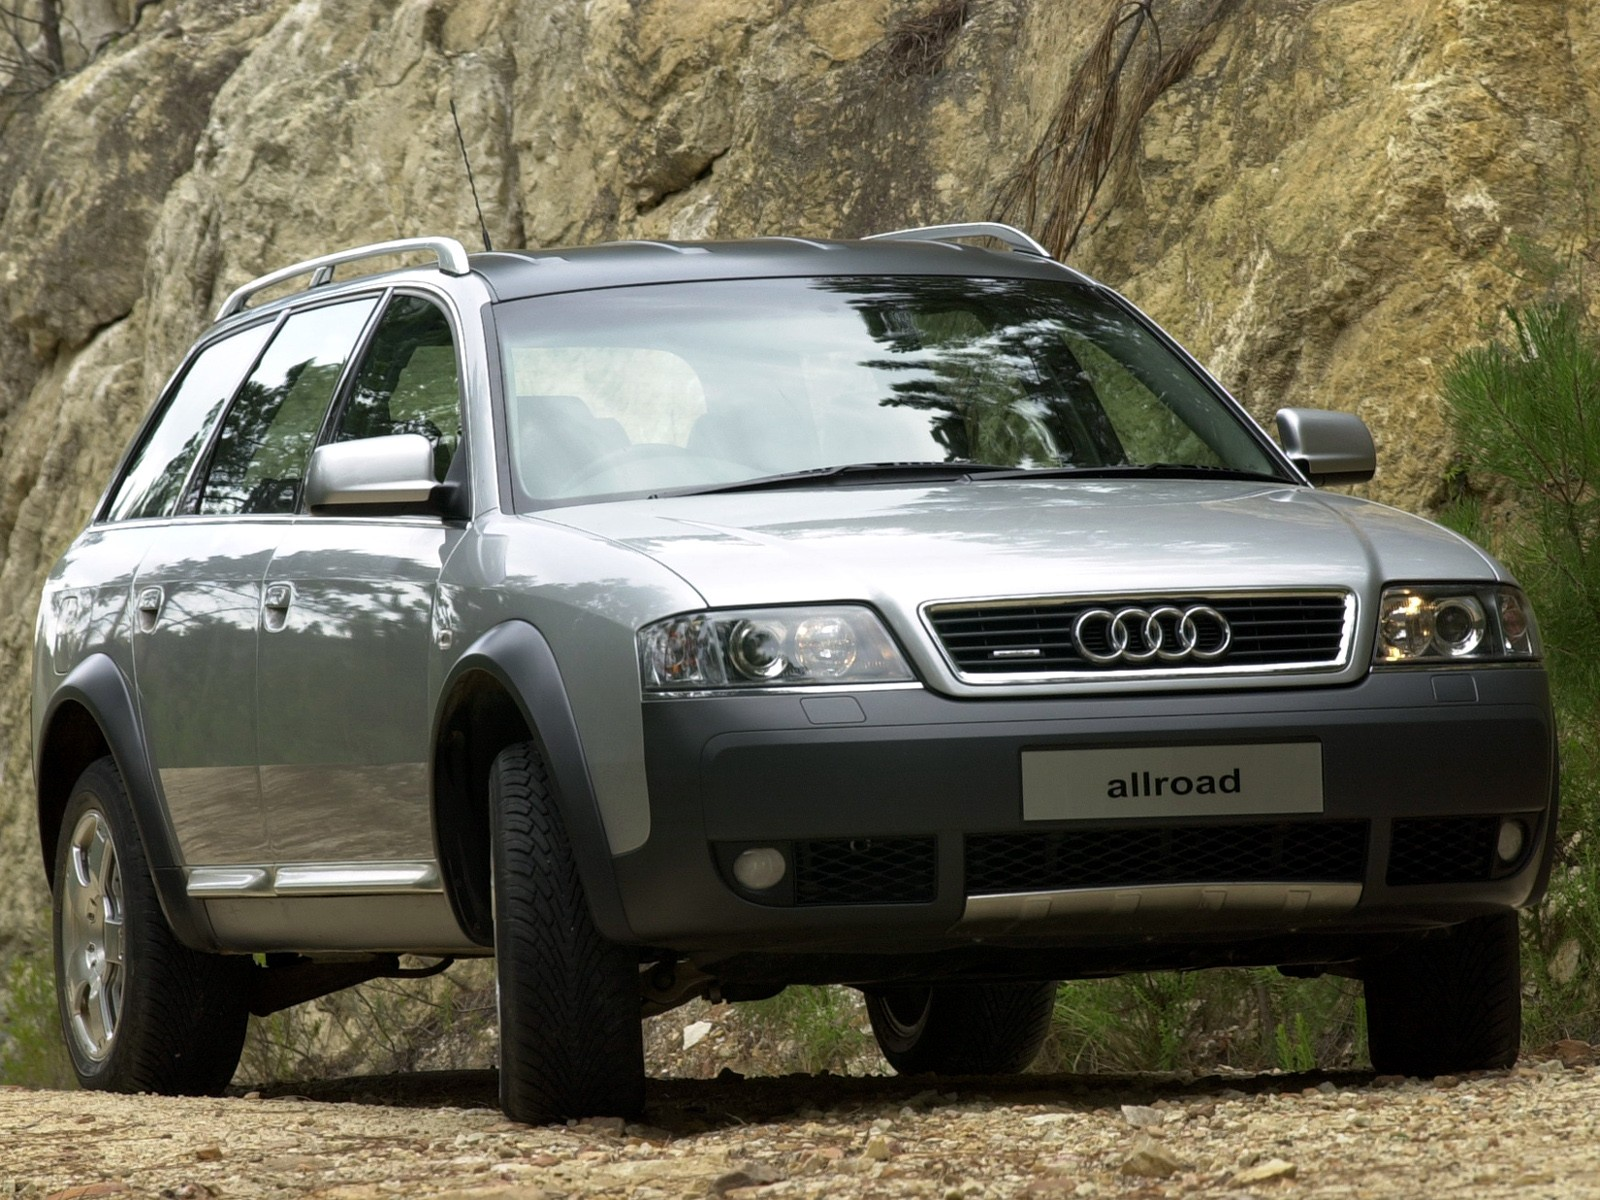 allroad audi commons jpg wiki file wikimedia